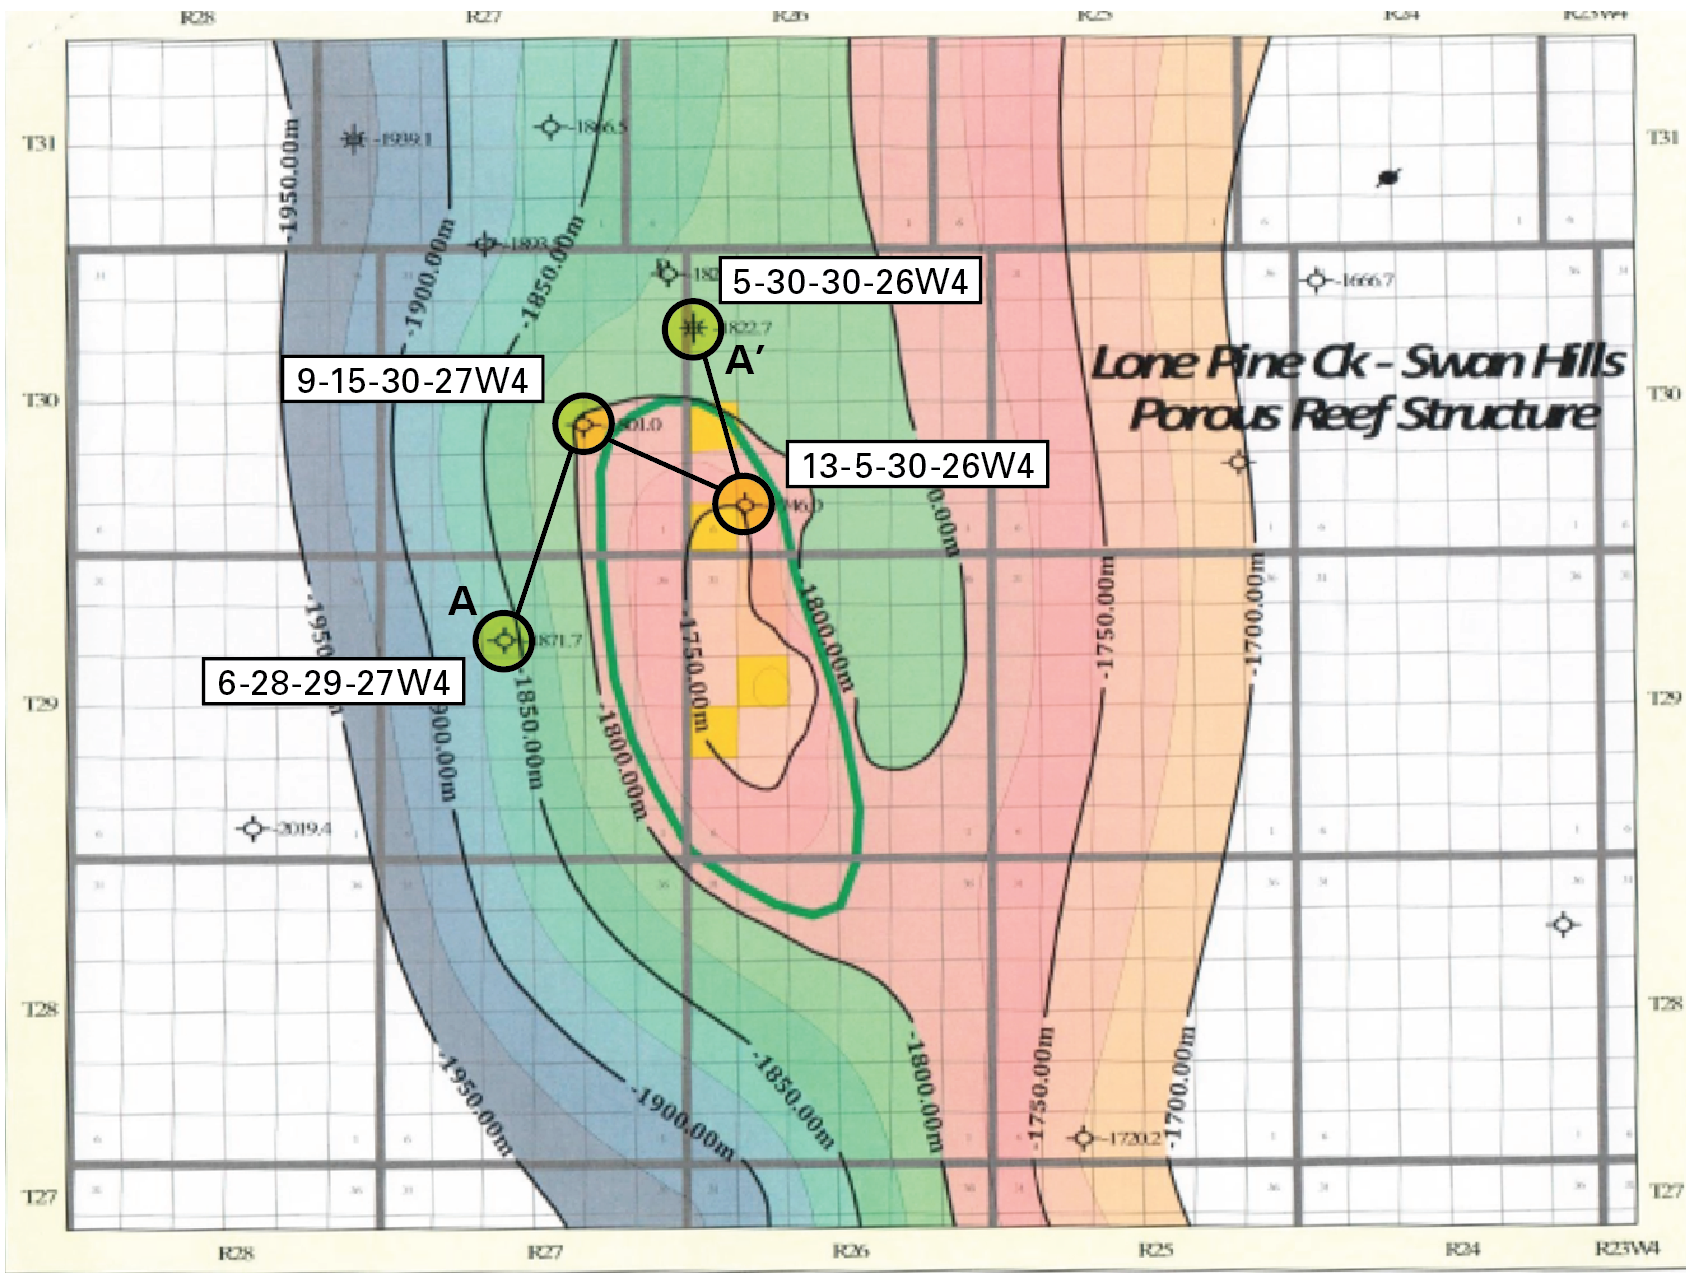 MAP 5 LONE PINE CREEK PROSPECT STRUCTURAL CROSS SECTION A-A'